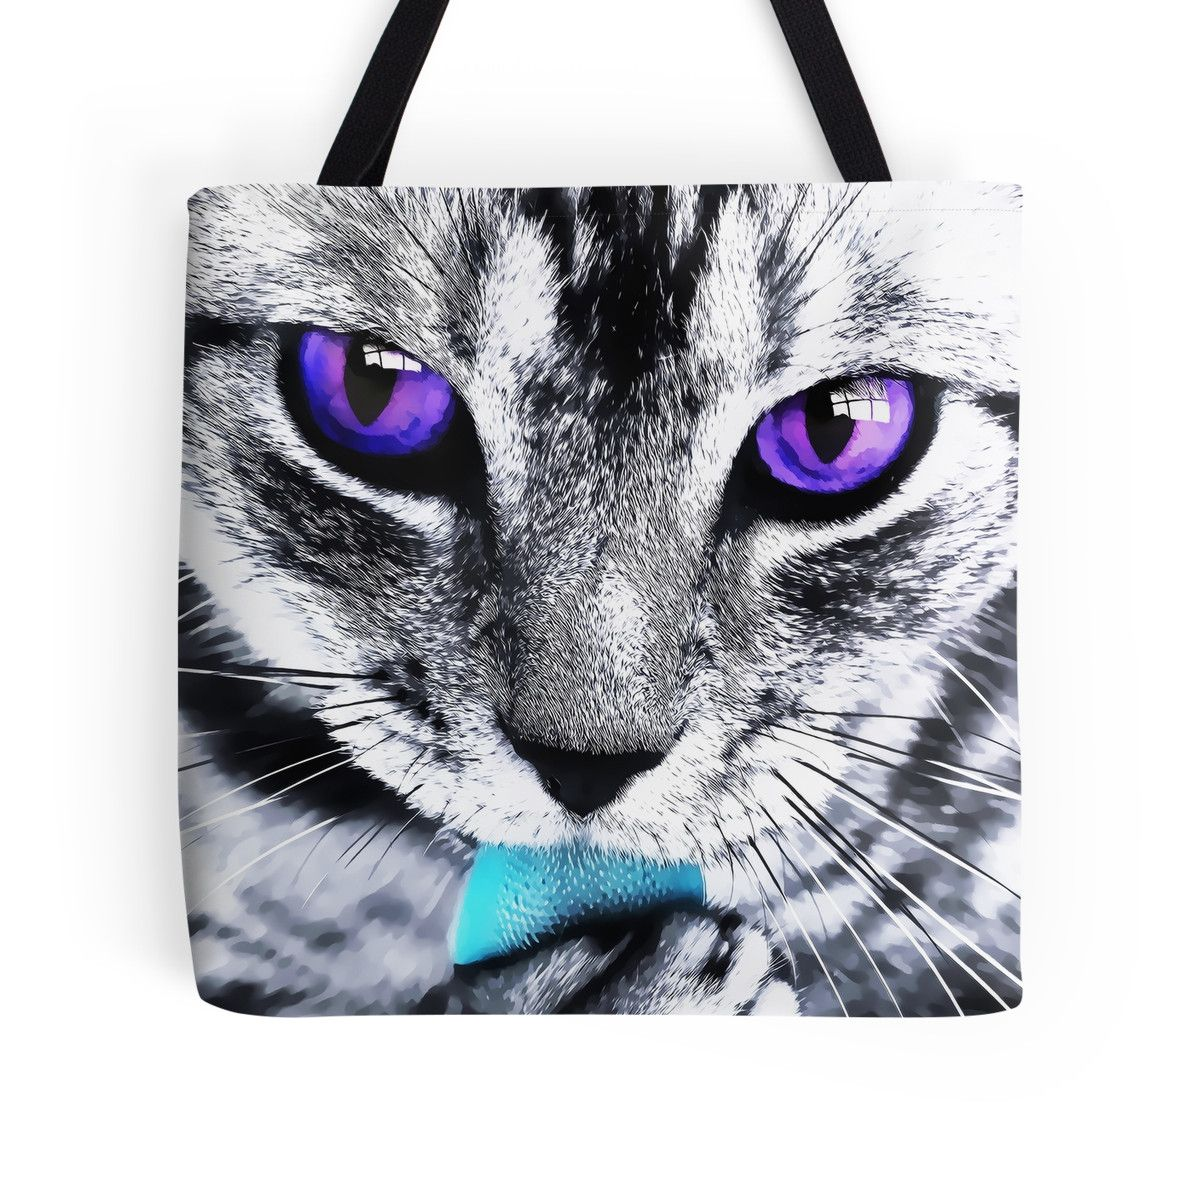 Available as T-Shirts & Hoodies, Men's Apparels, Stickers, iPhone Cases, Samsung Galaxy Cases, Posters, Home Decors, Tote Bags, Pouches, Prints, Cards, Leggings, Pencil Skirts, Scarves, Kids Clothes, iPad Cases, Laptop Skins, Drawstring Bags, Laptop Sleeves, and Stationeries